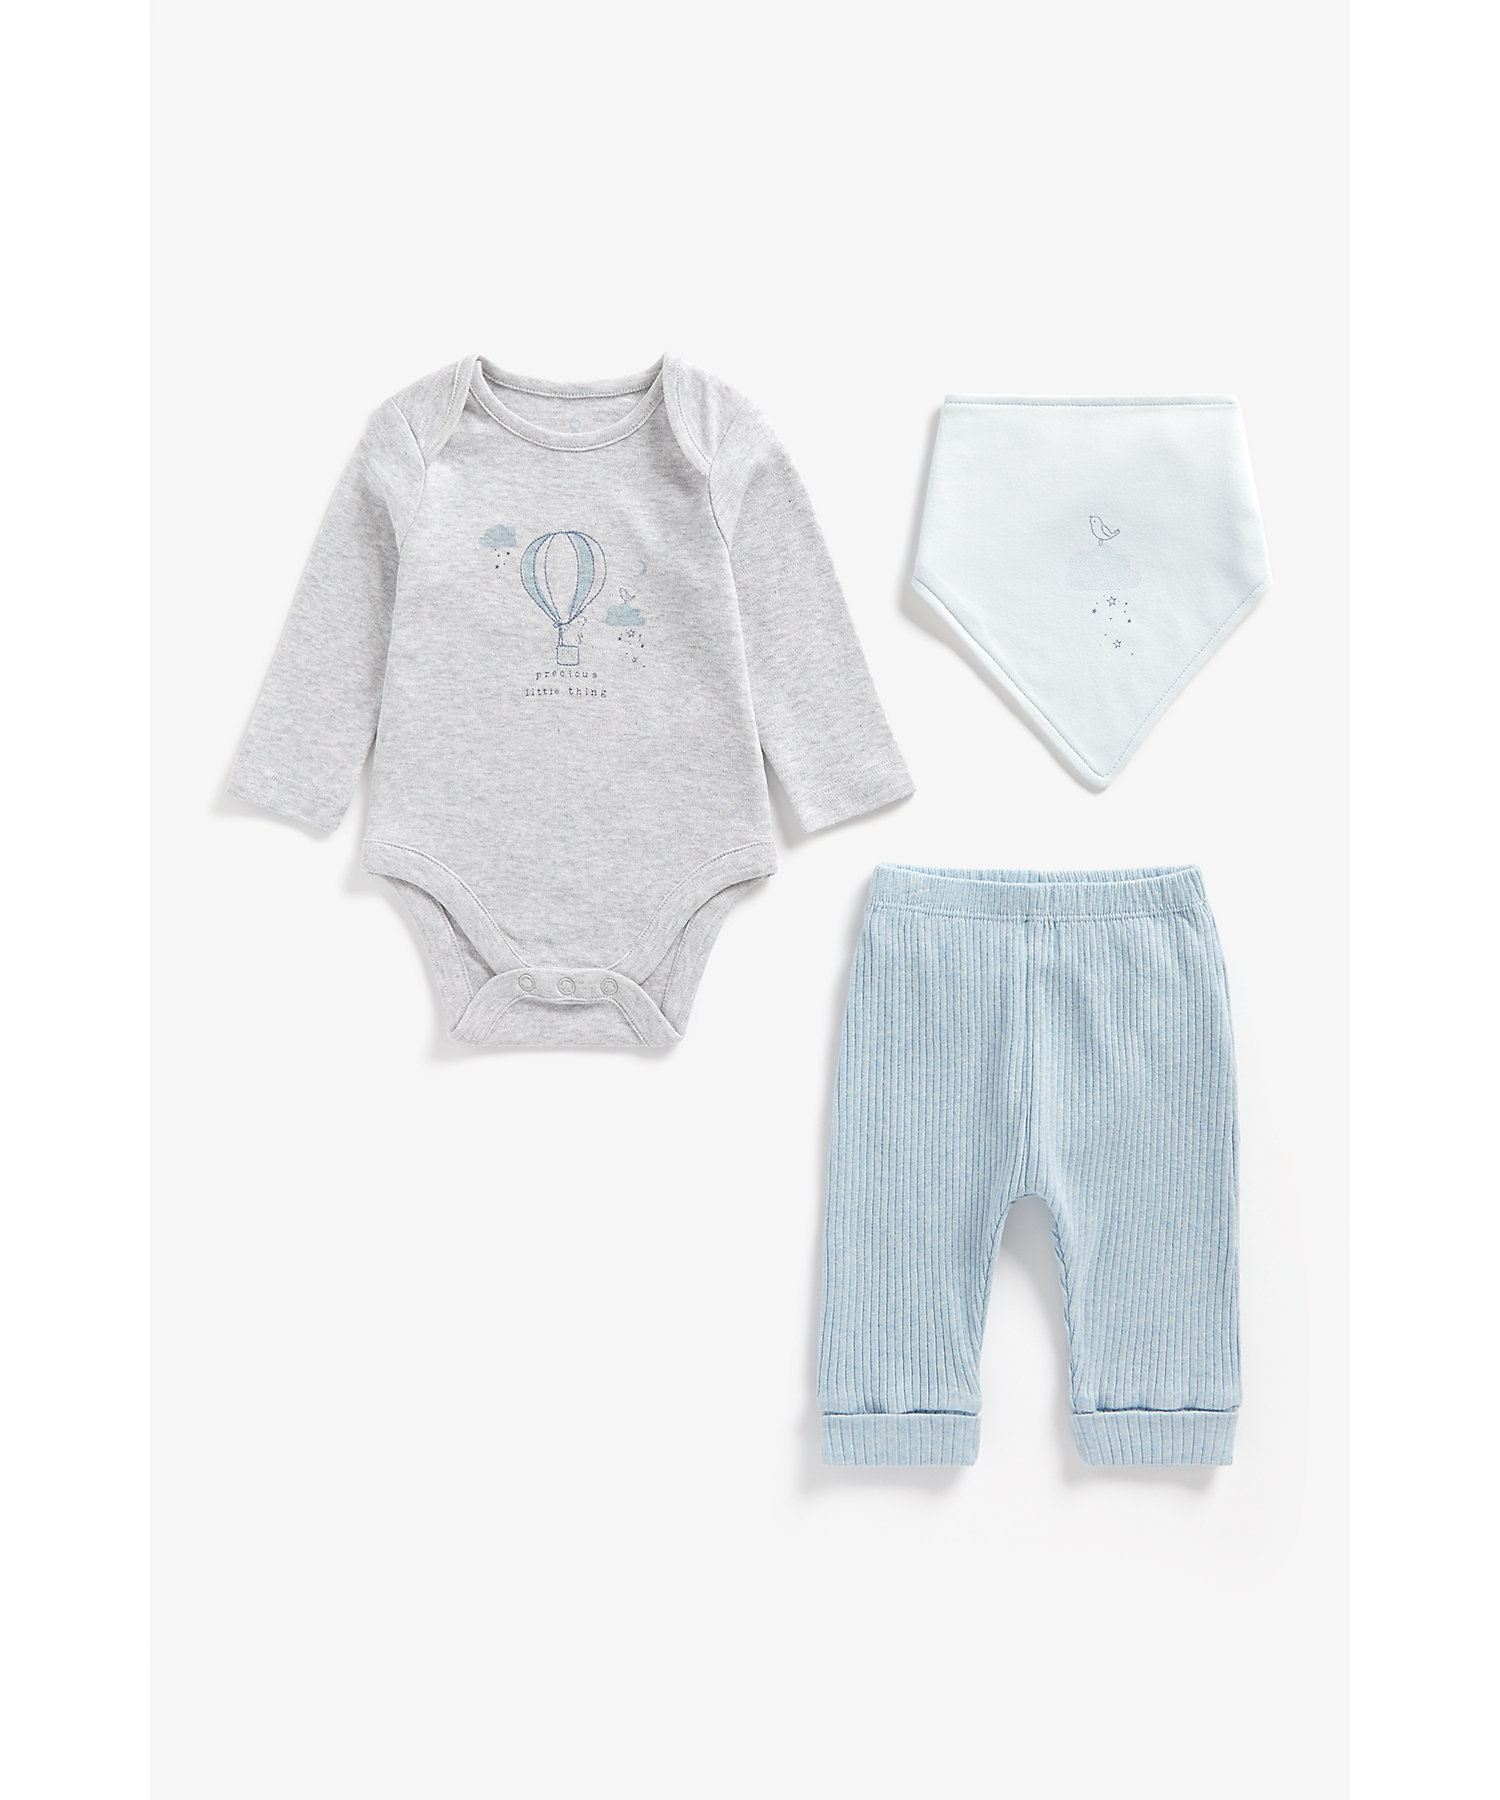 Mothercare   Boys Full Sleeves 3 Piece Set Hot Air Balloon Embroidery - Blue